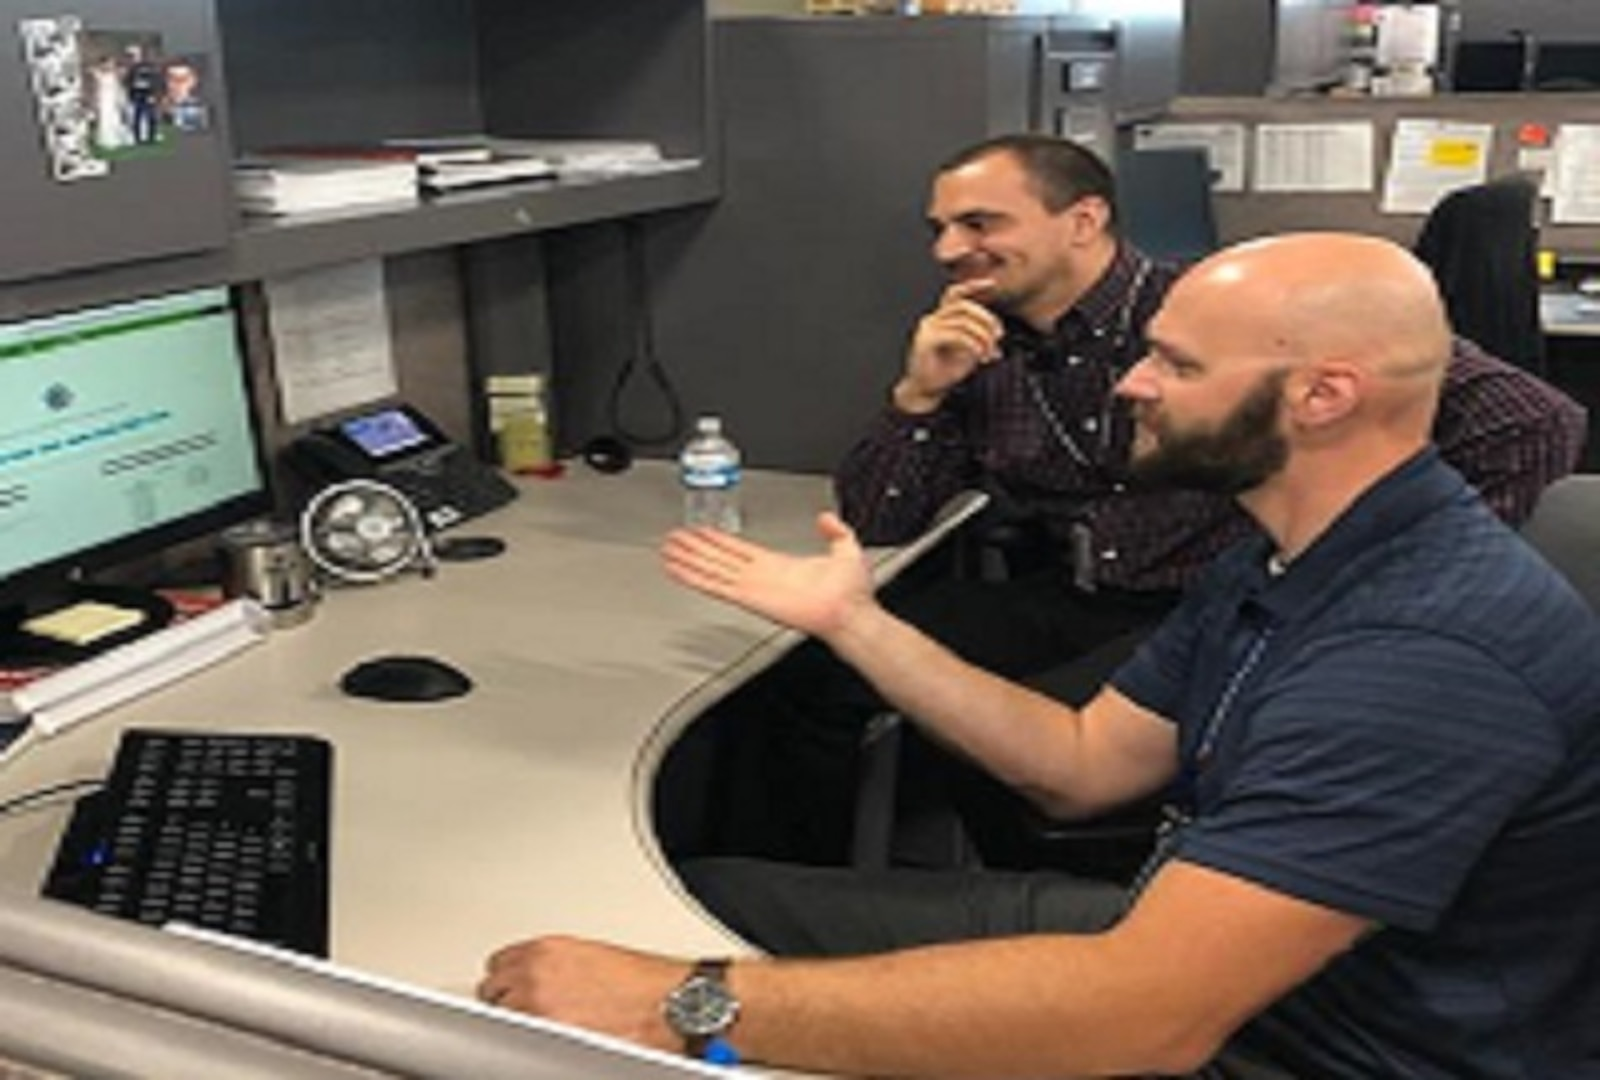 Jeff Day and Chris Rodriguez review the CAS/Order Fulfillment SharePoint Website they created which provided easily navigational features and saved the customer time.